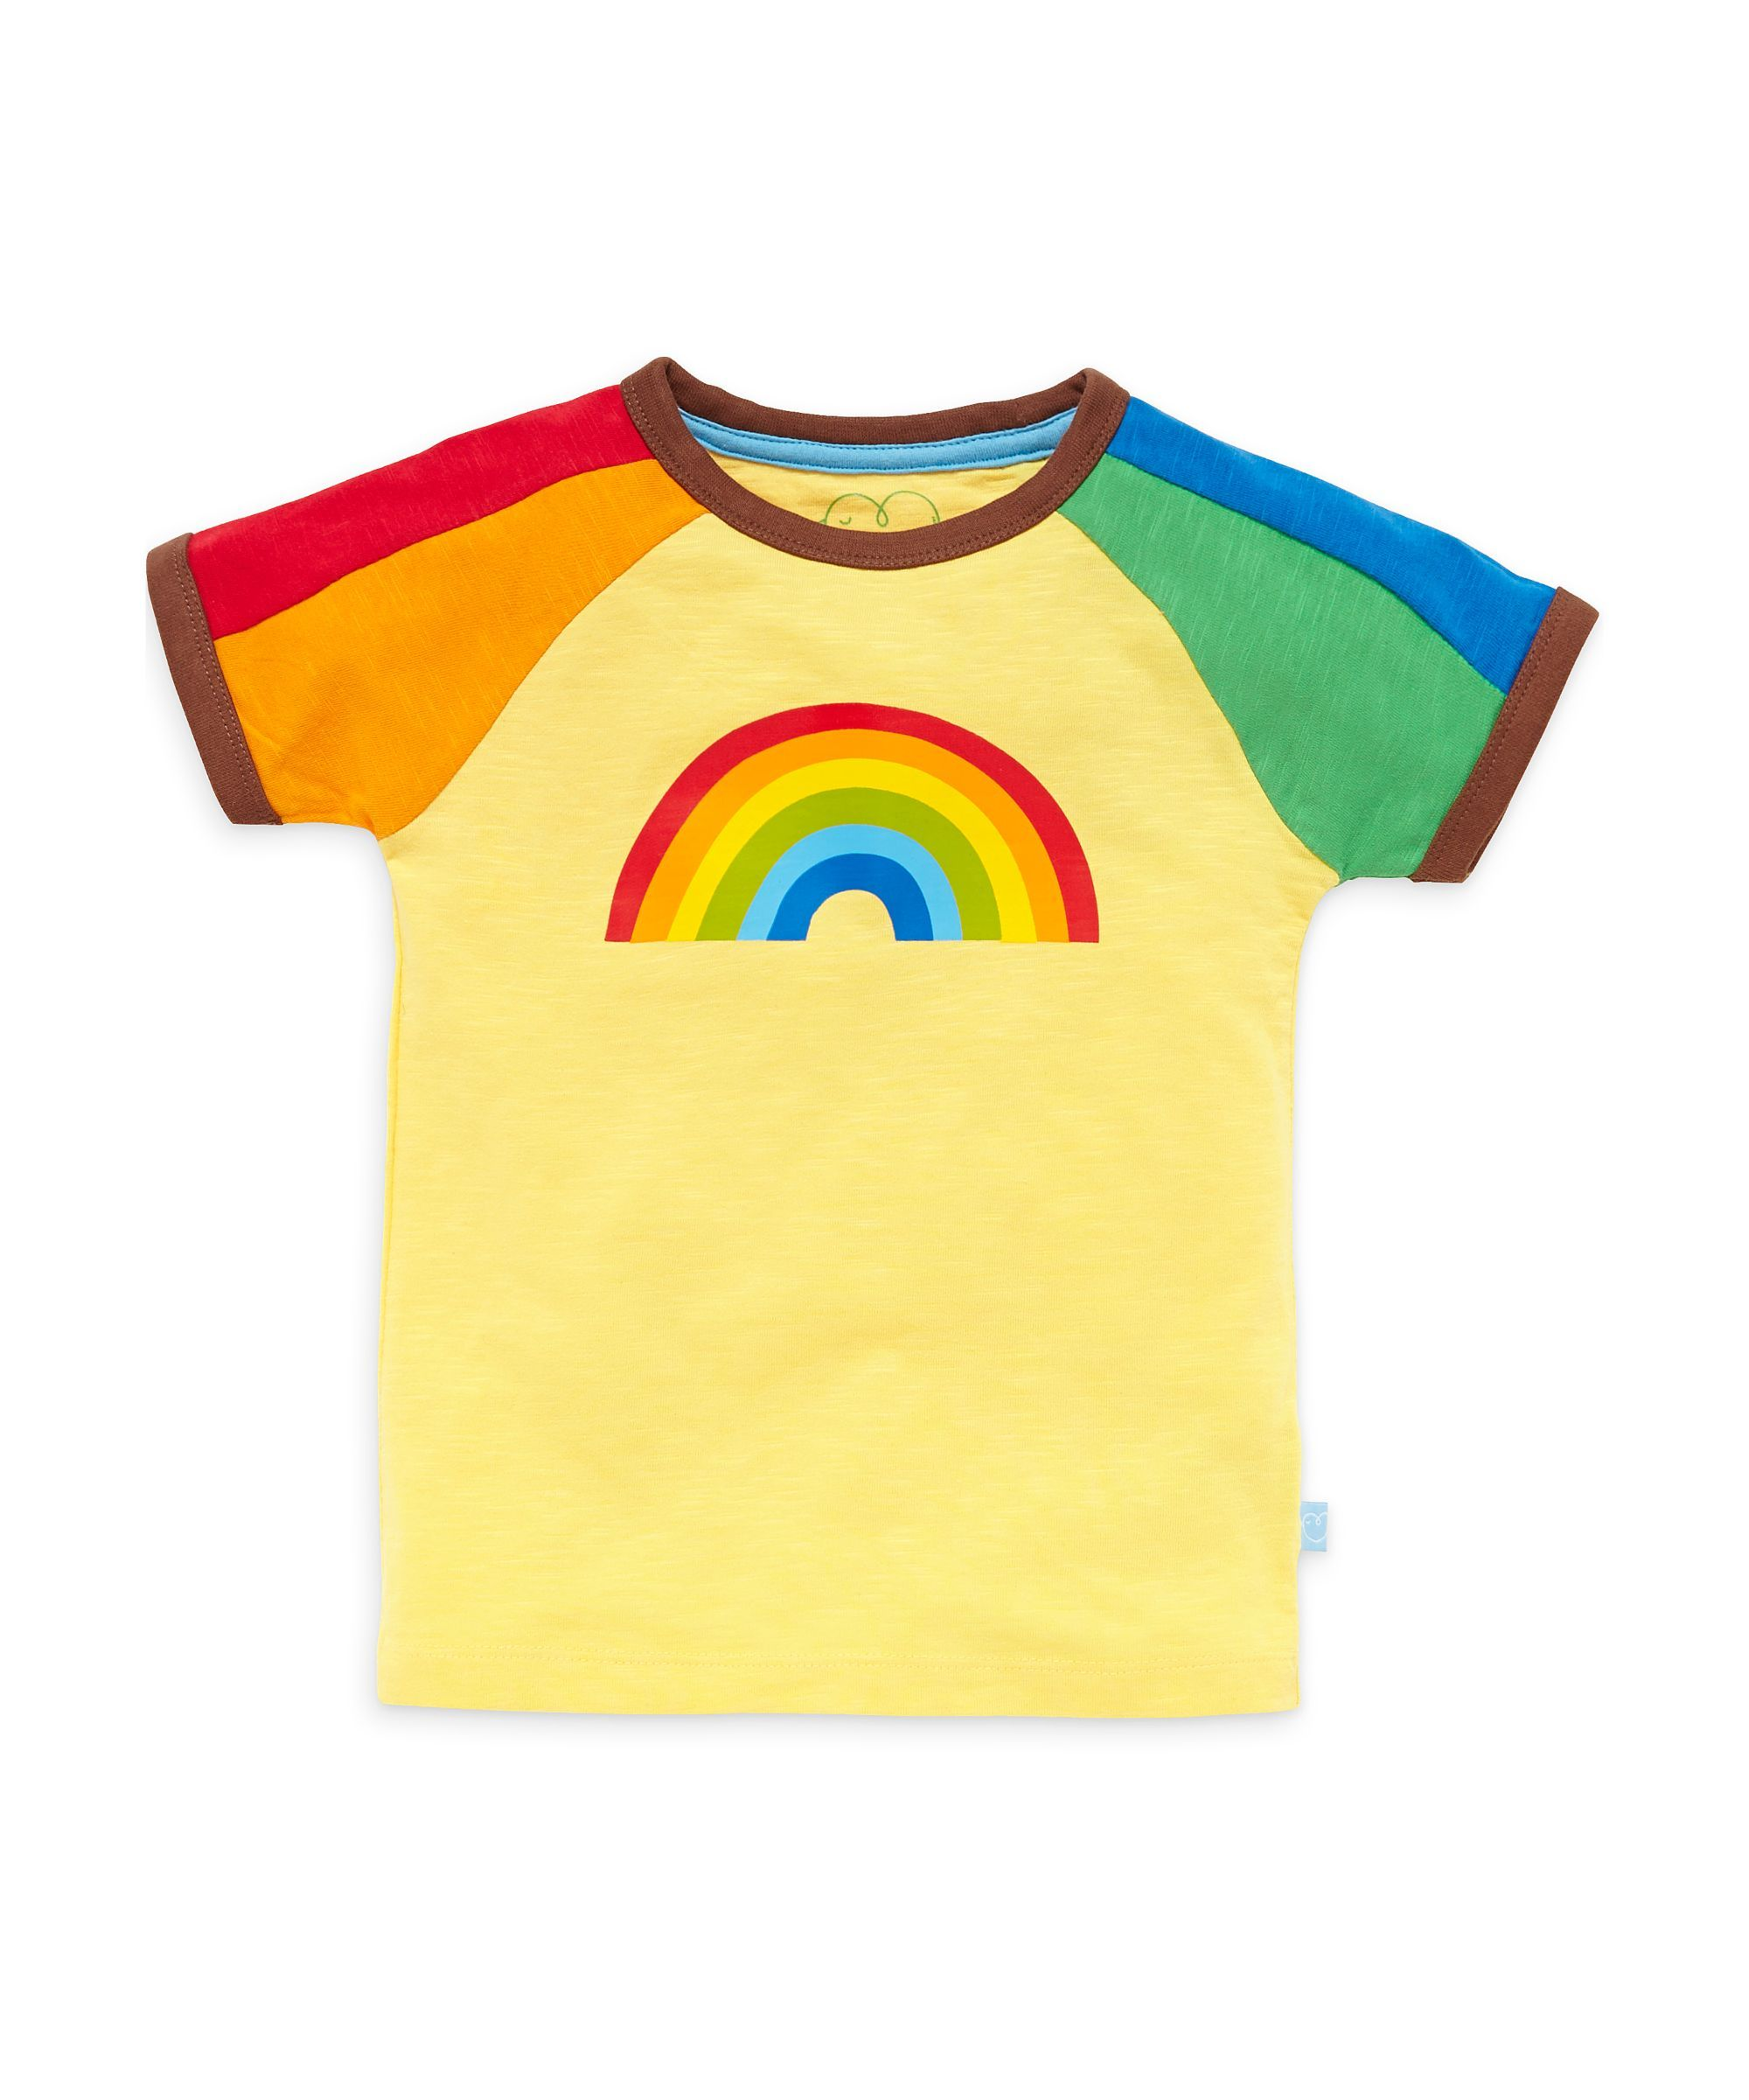 2e5eb6740 Little Bird by Jools Rainbow Print T-Shirt | baby | Little bird ...